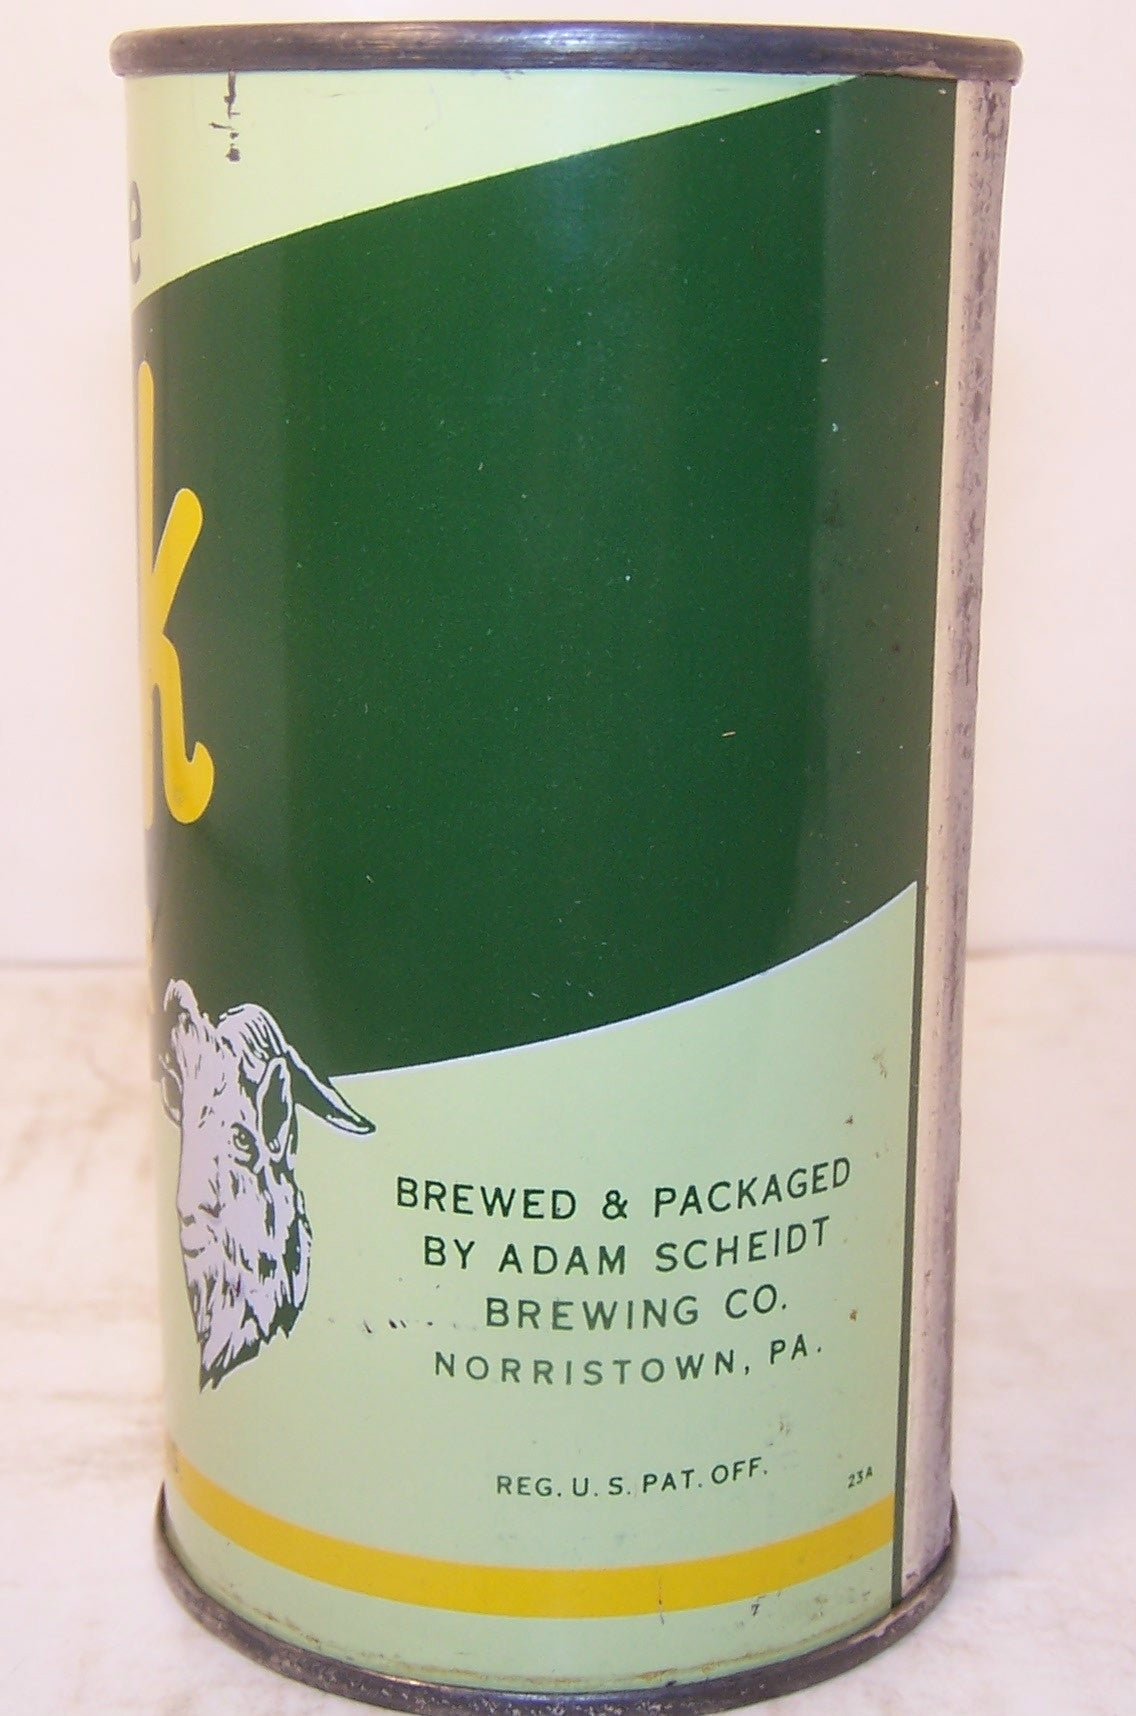 Valley Forge Bock Beer, USBC 143-9 (Valley Forge in Green Letters) Grade 1